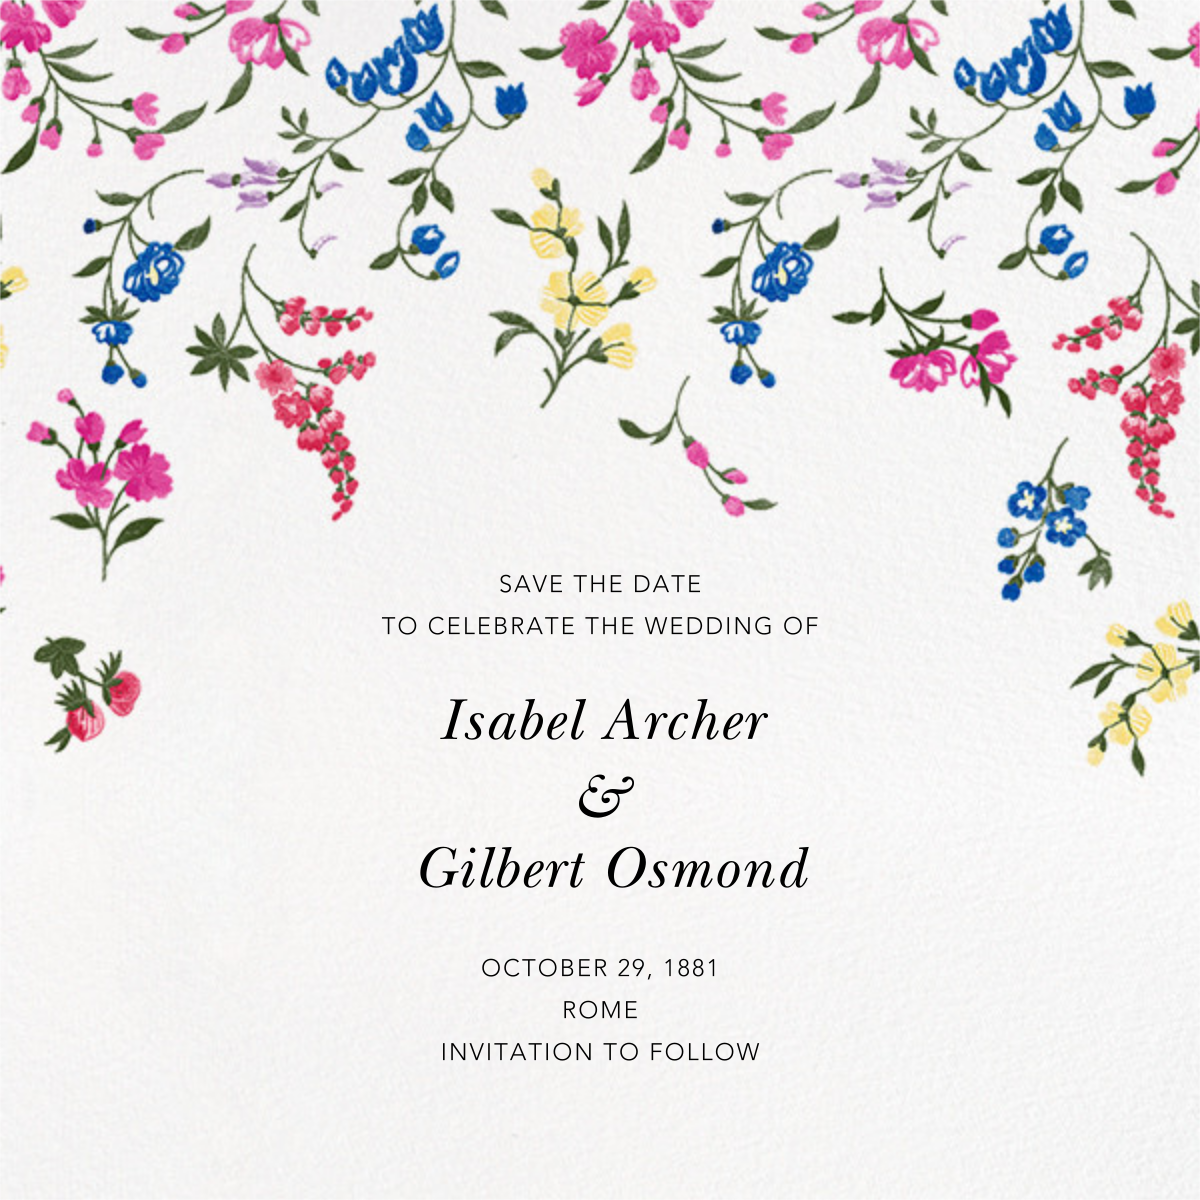 English Garden (Save the Date) - Oscar de la Renta - Save the date